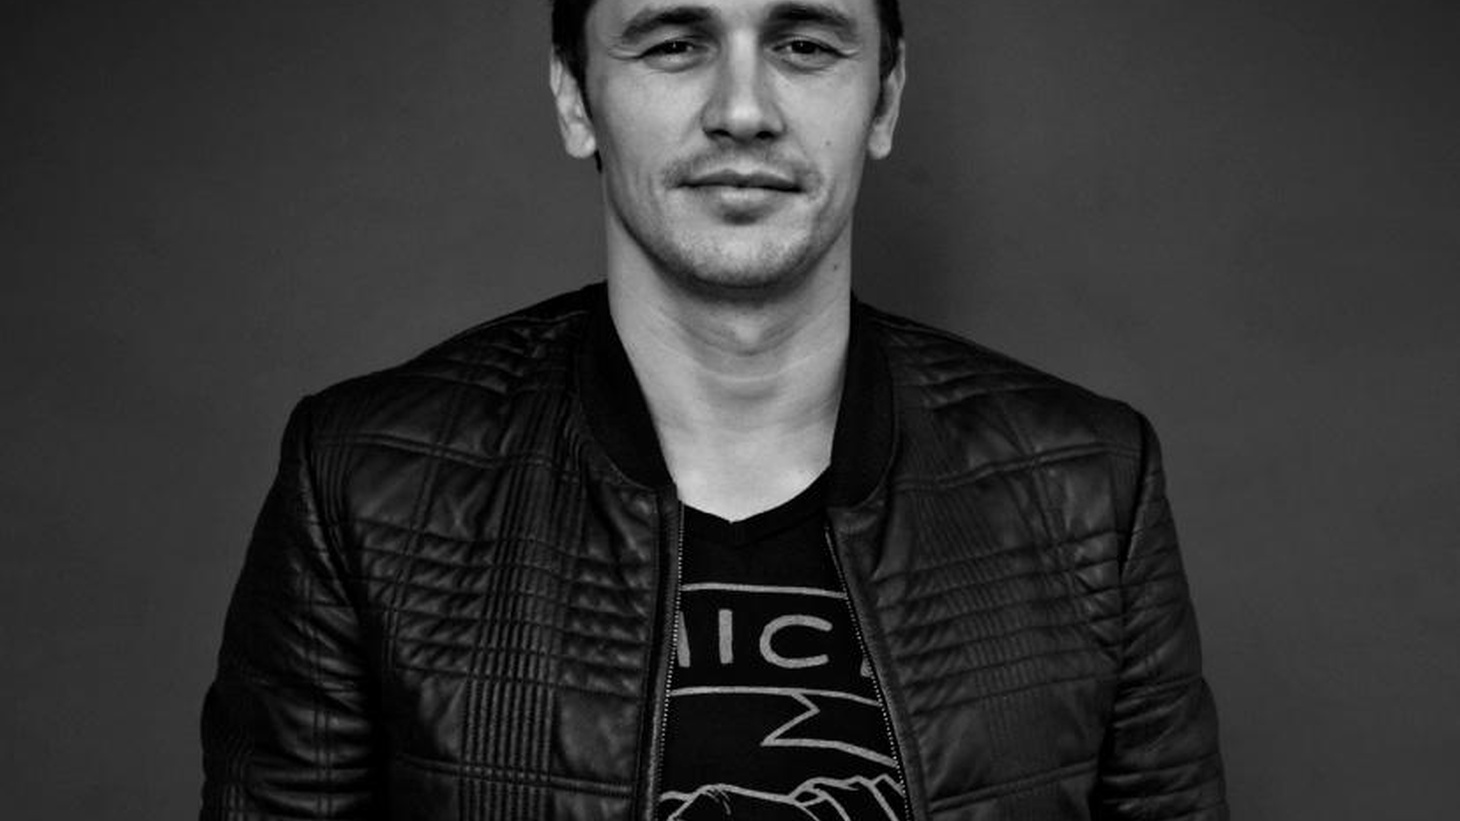 James Franco says literature was his emotional and intellectual escape valve from the alternate reality of filmmaking, performance, and celebrity.